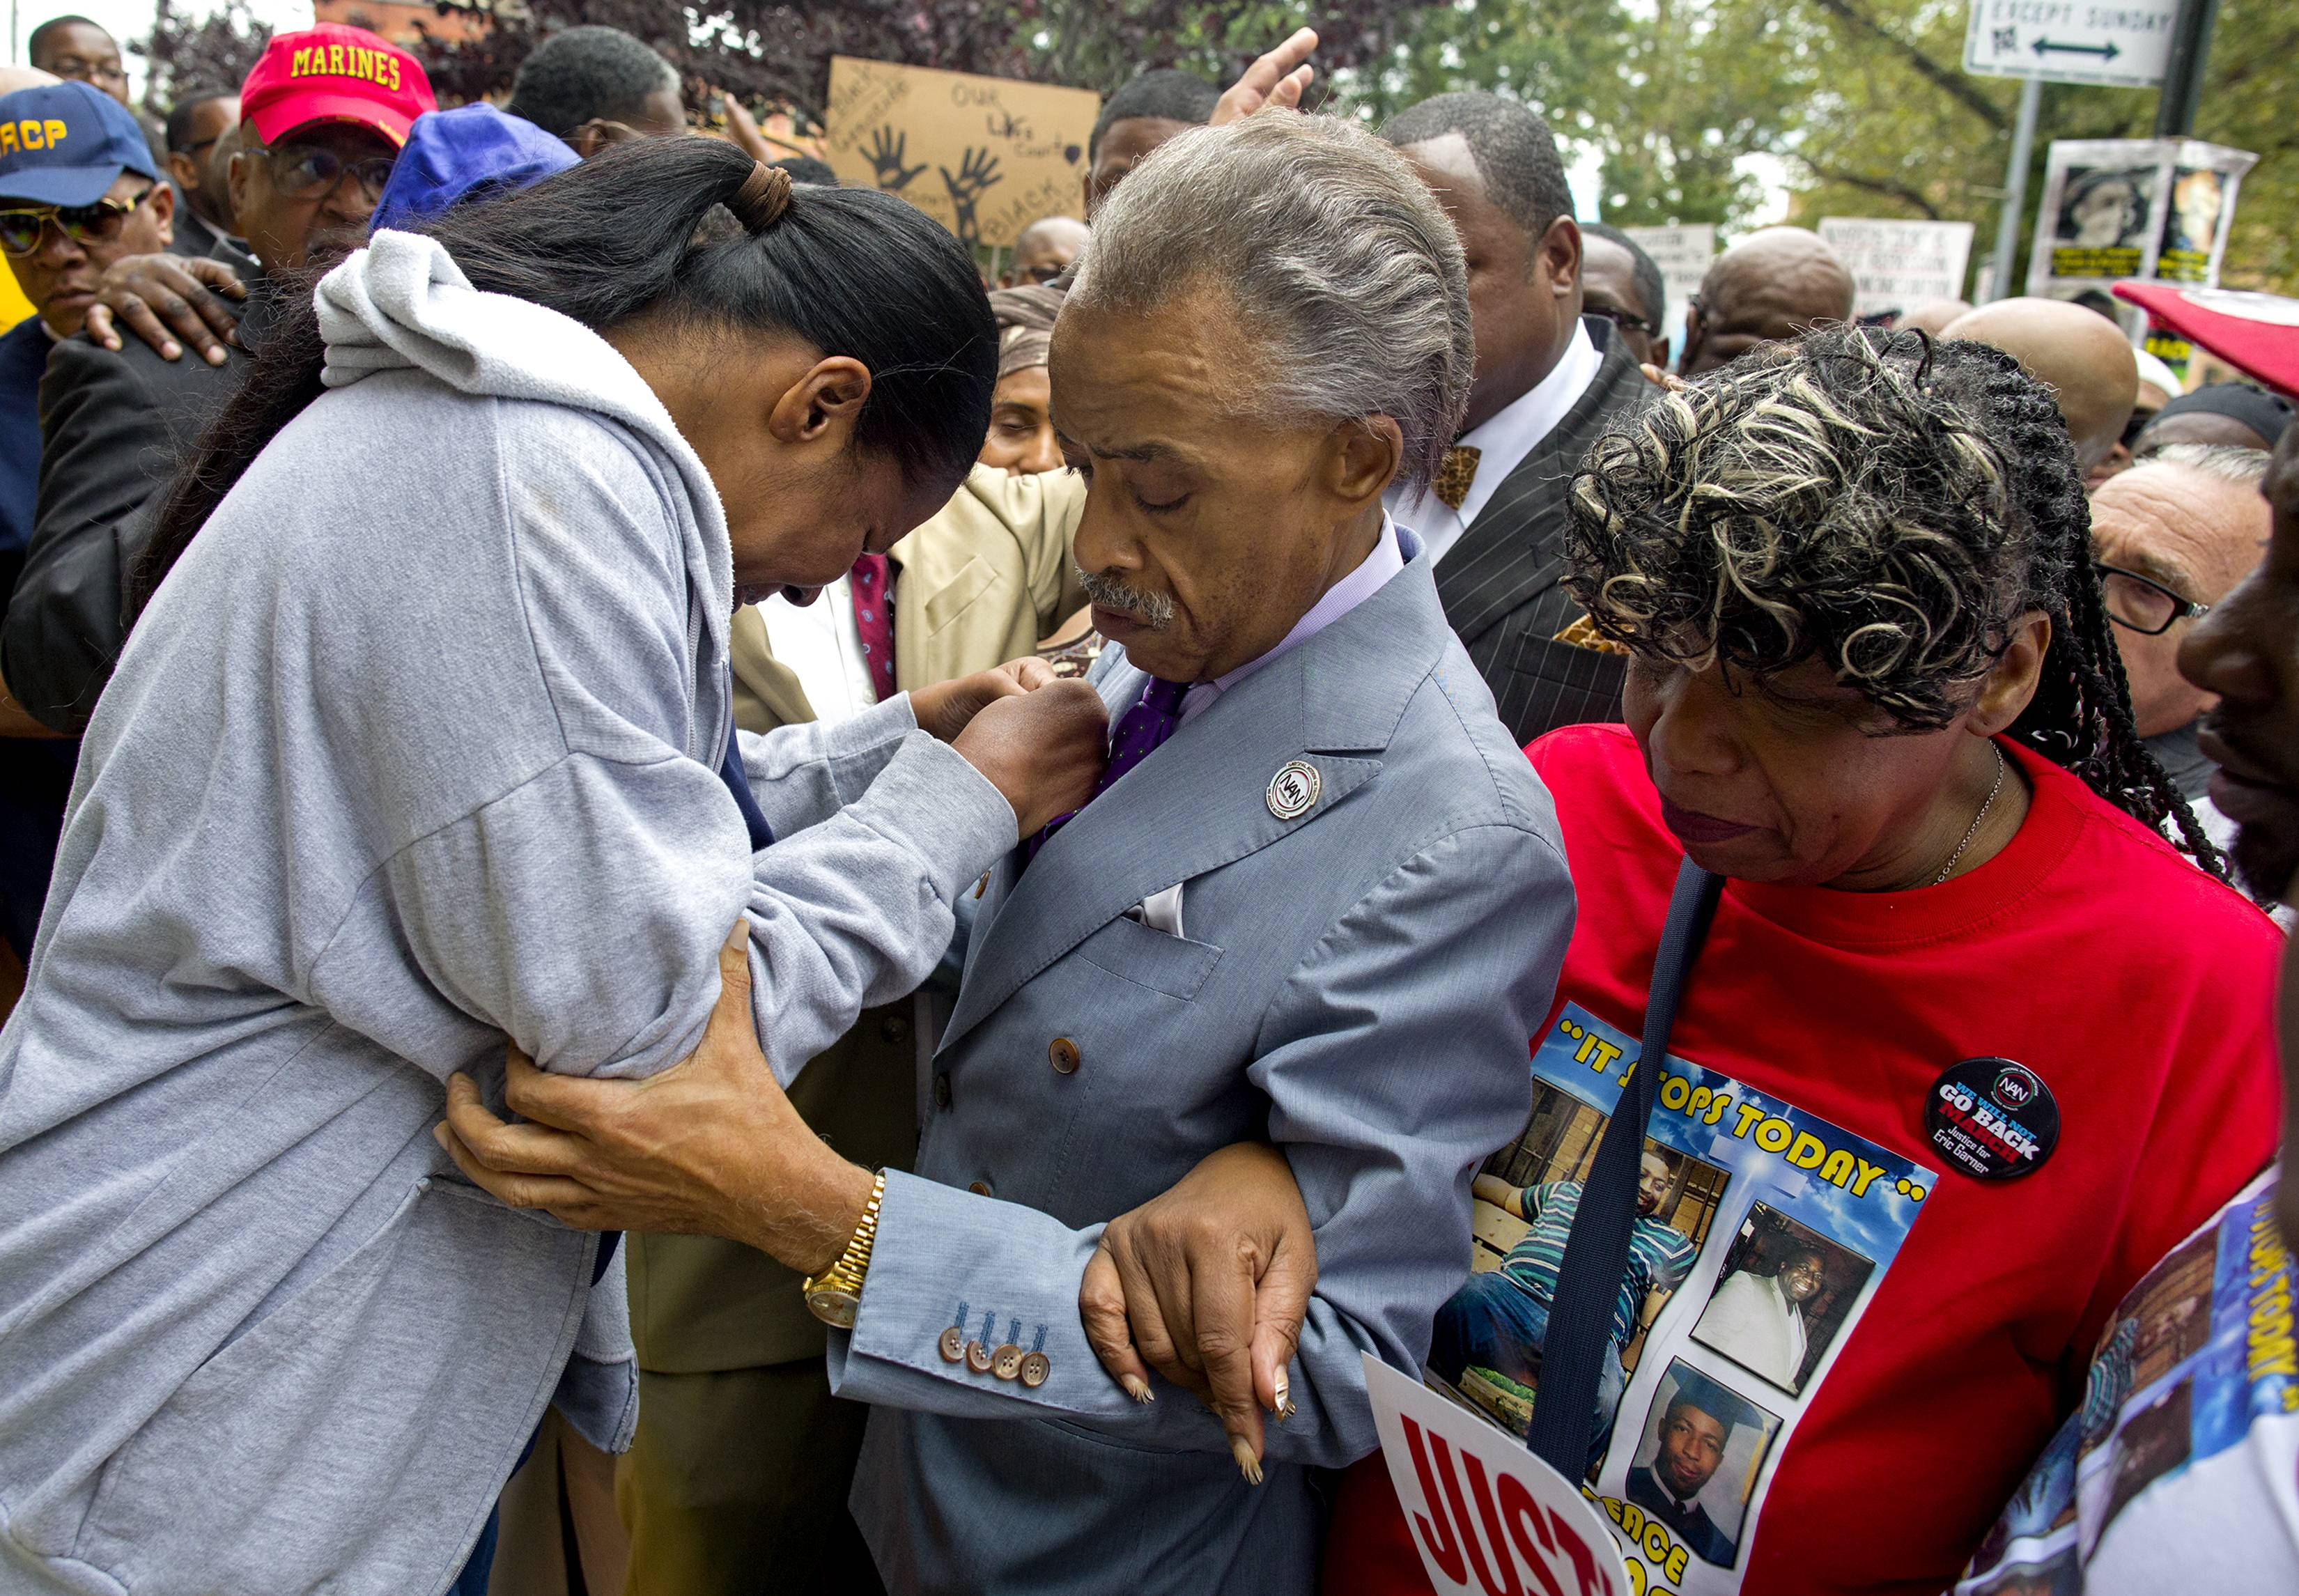 Esaw Garner, left, arrives at the spot where her husband Eric Garner died with The Rev. Al Sharpton, center, and Eric Garner's mother Gwen Carr, right, at the start of a march and rally Saturday in the Staten Island borough of New York.